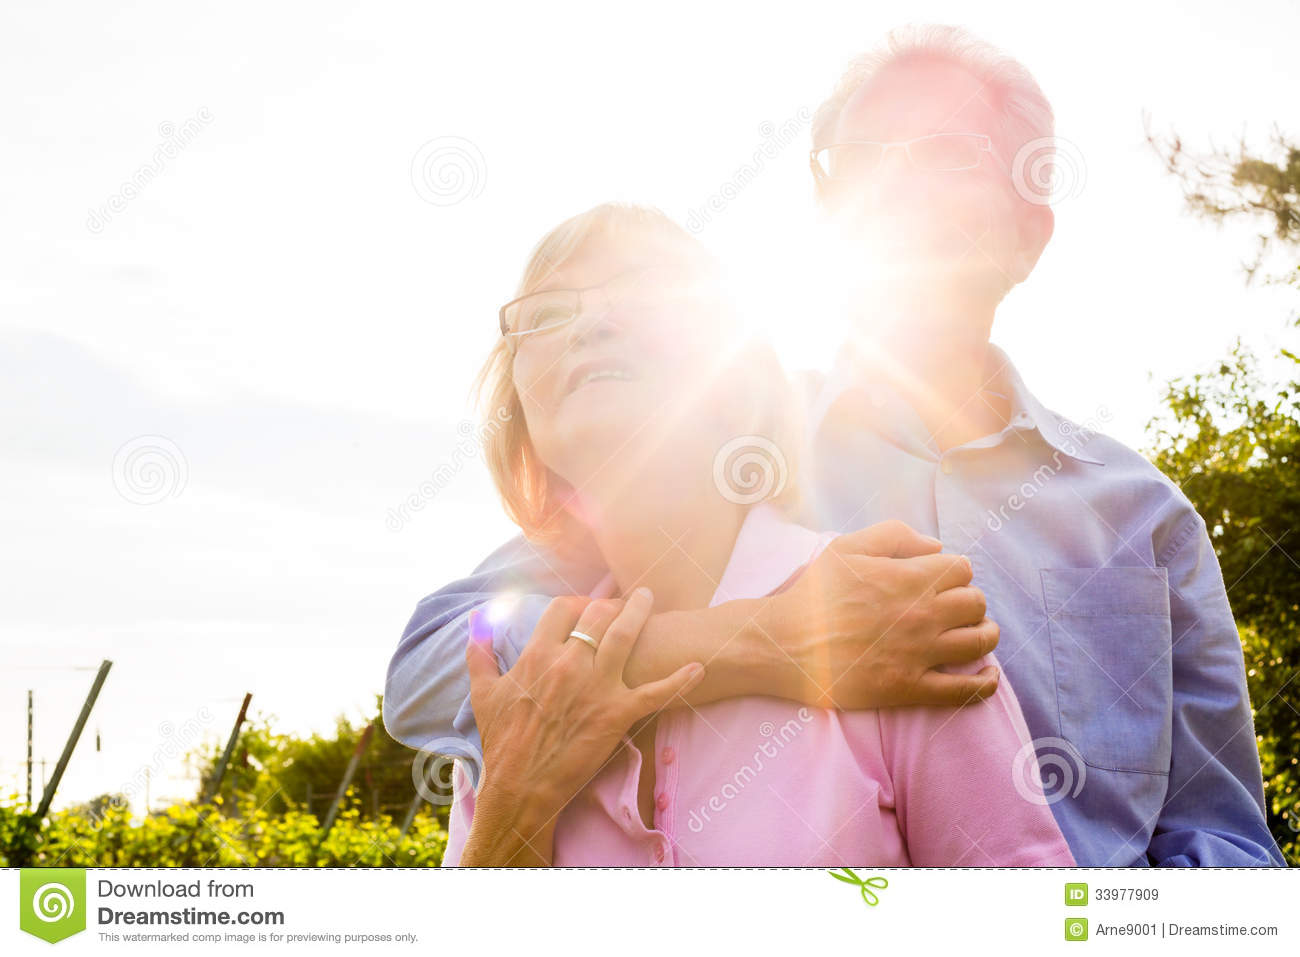 meno senior personals This is where senior personals sites come in handy with millions of mature men  and women all in one place, finding that date-worthy someone.